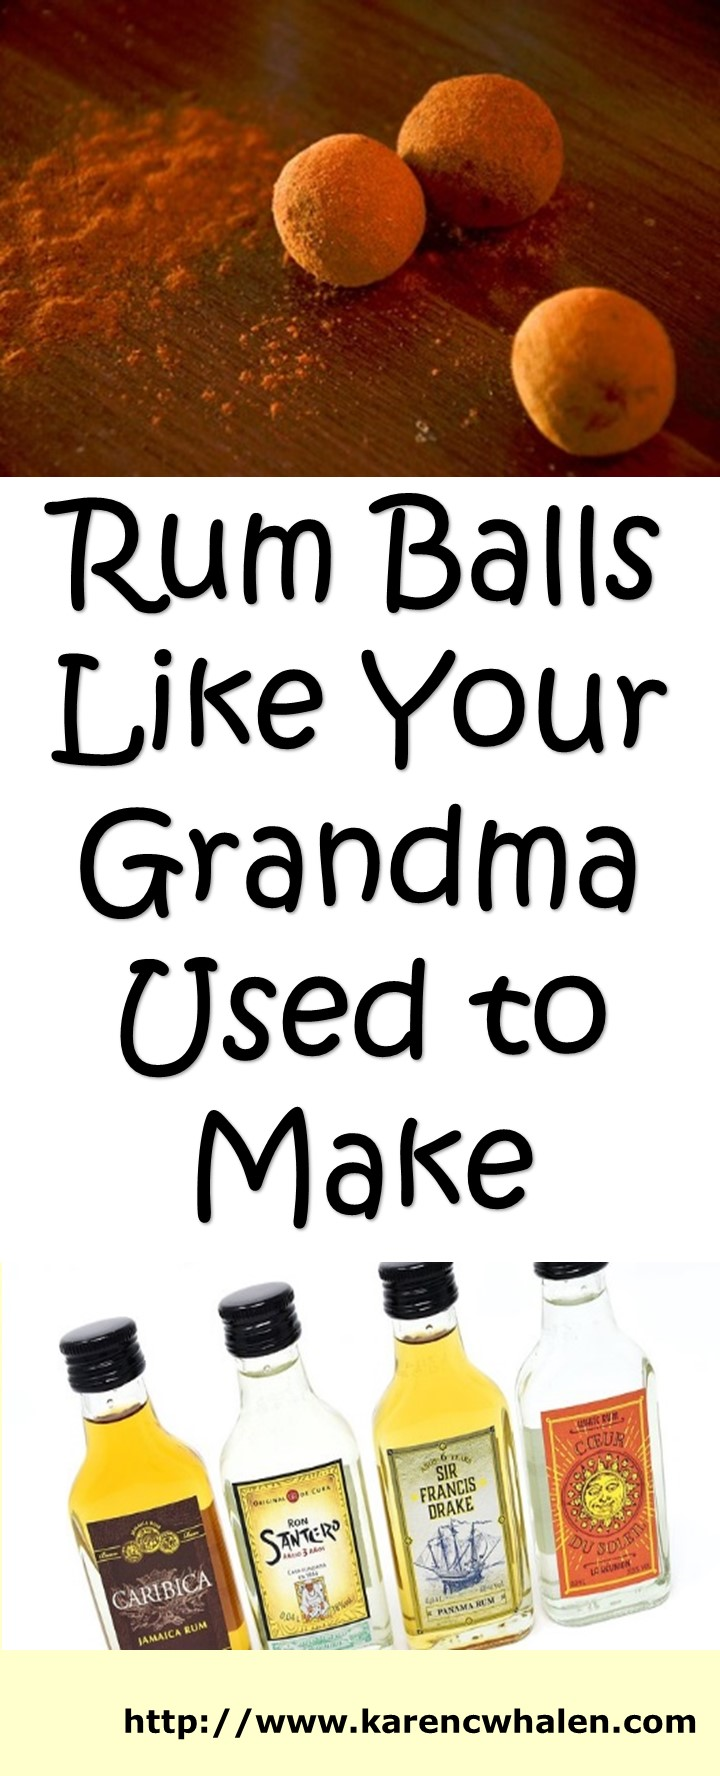 Rum Ball Recipe Like Grandma Used to Make